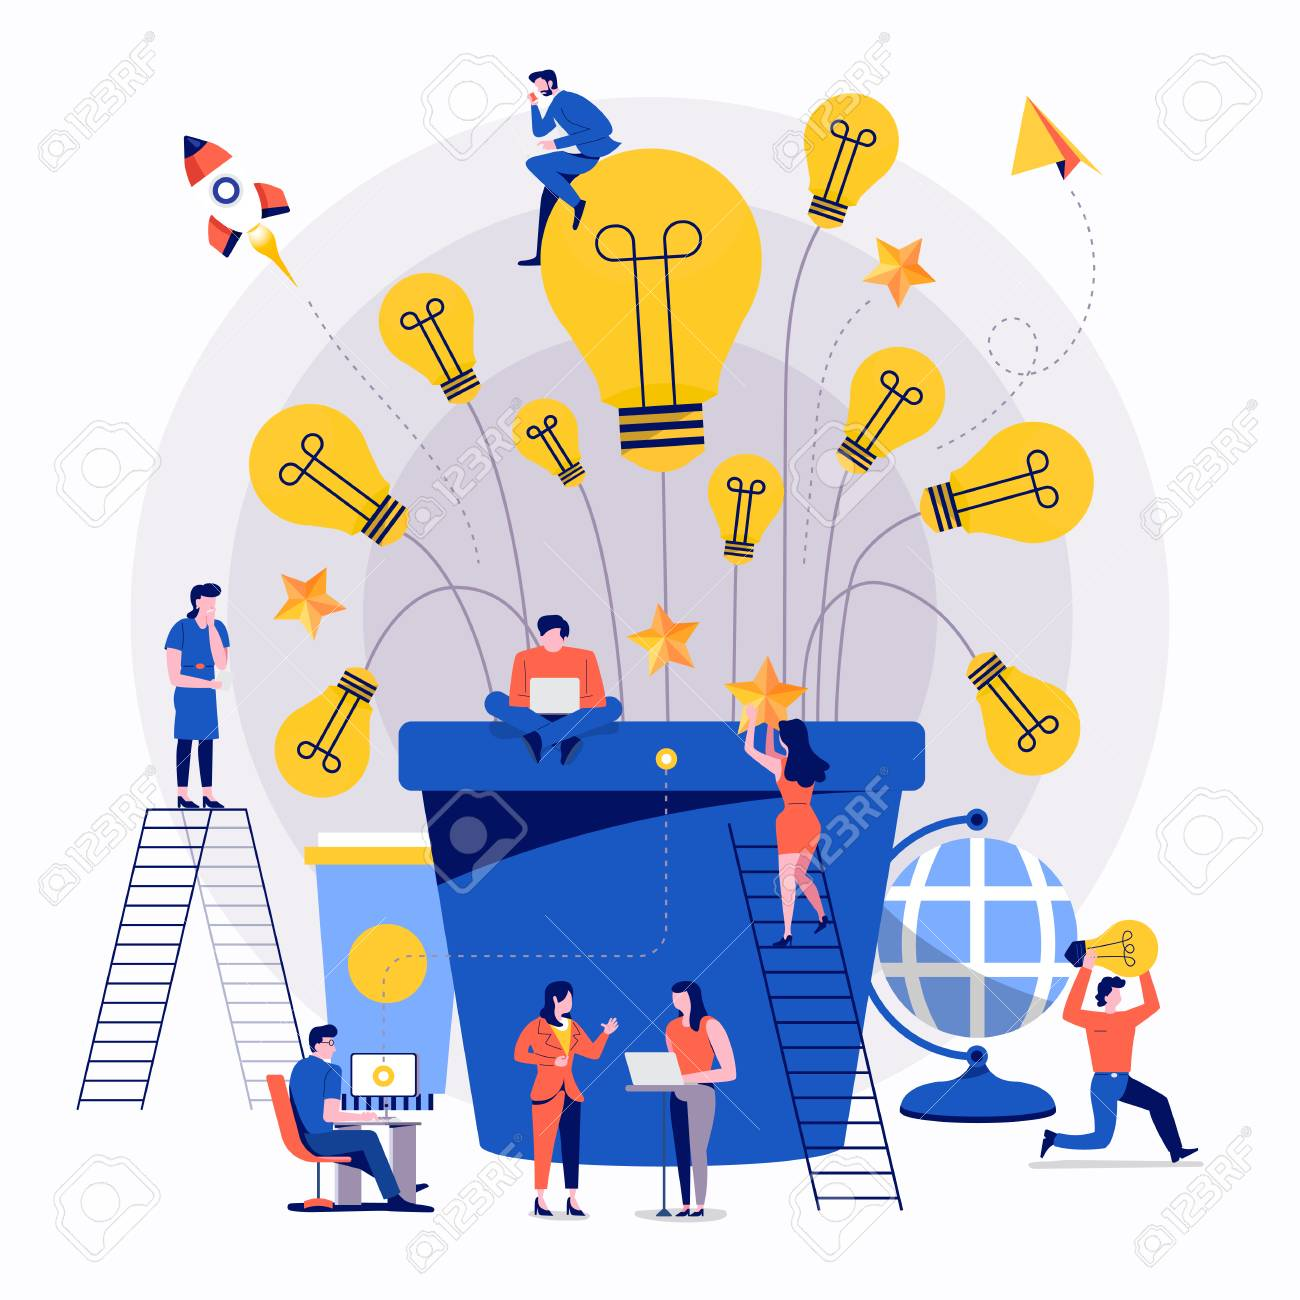 Illustrations flat design concept teamwork small people businessman working together for building success creative idea advertising. Vector illustrate. - 112266425